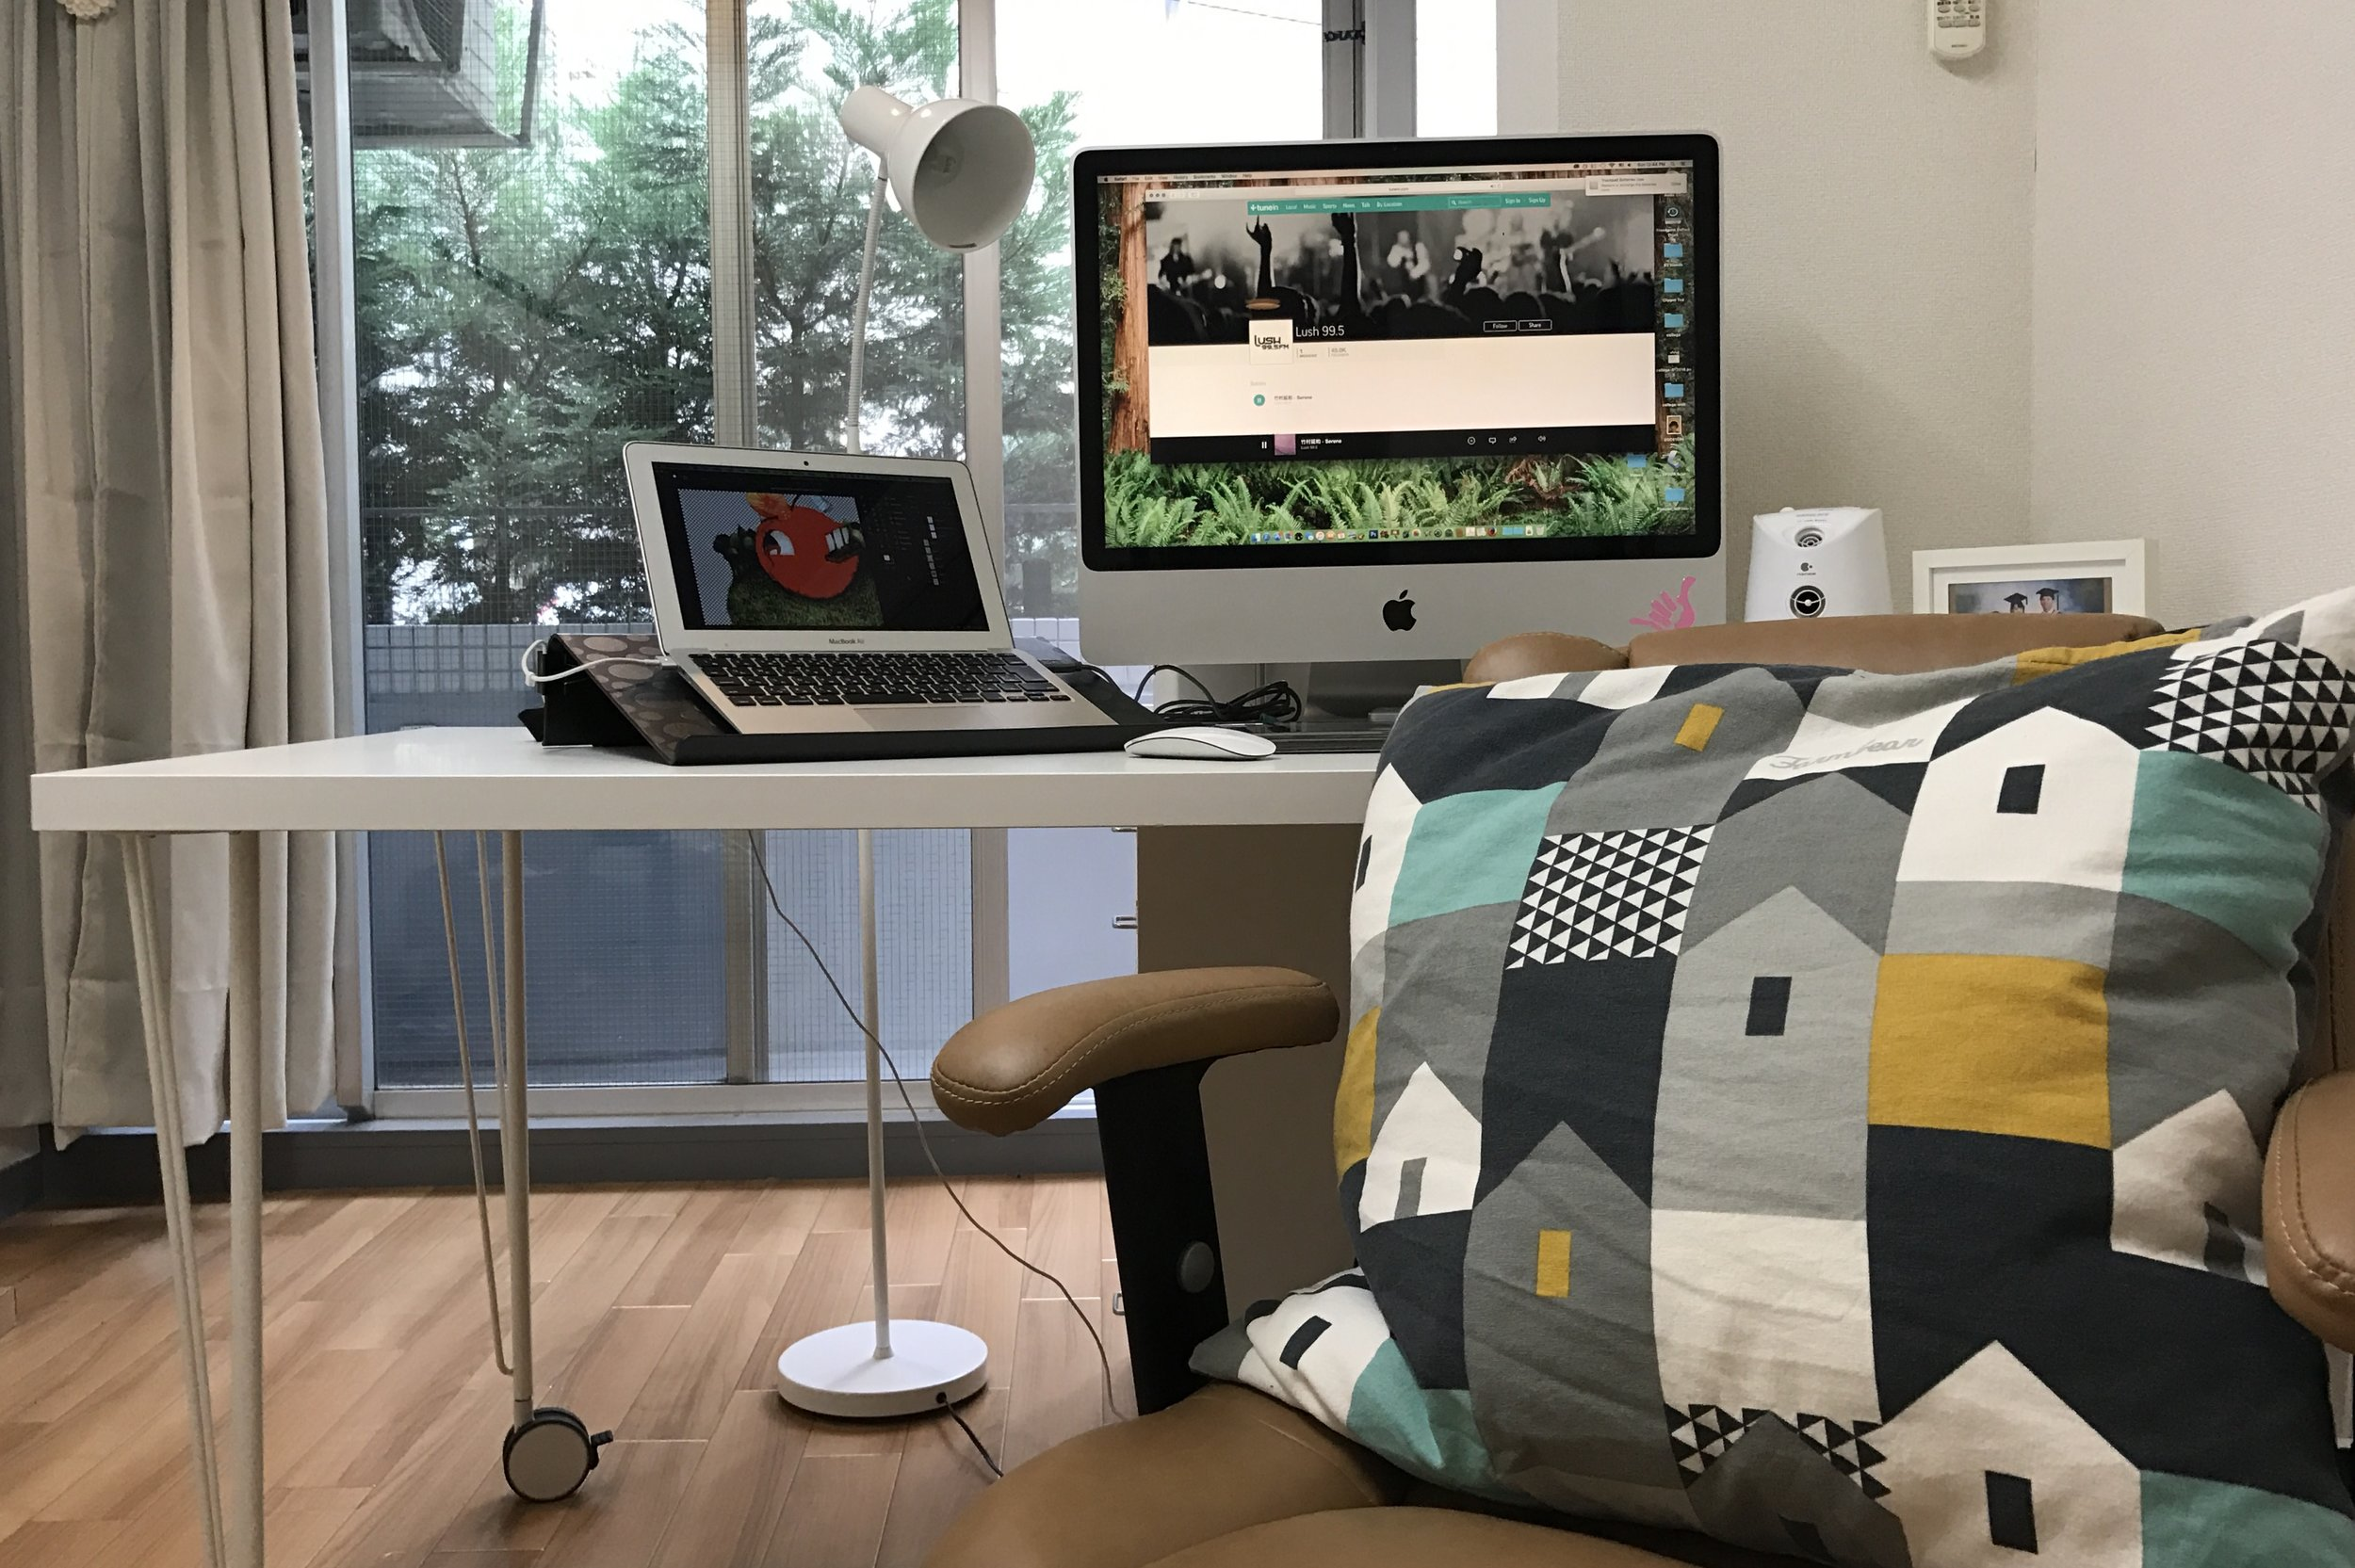 The desk put together with KRILLE legs and  LINNMON 200cm table top with a laptop stand with  BRADA laptop support .